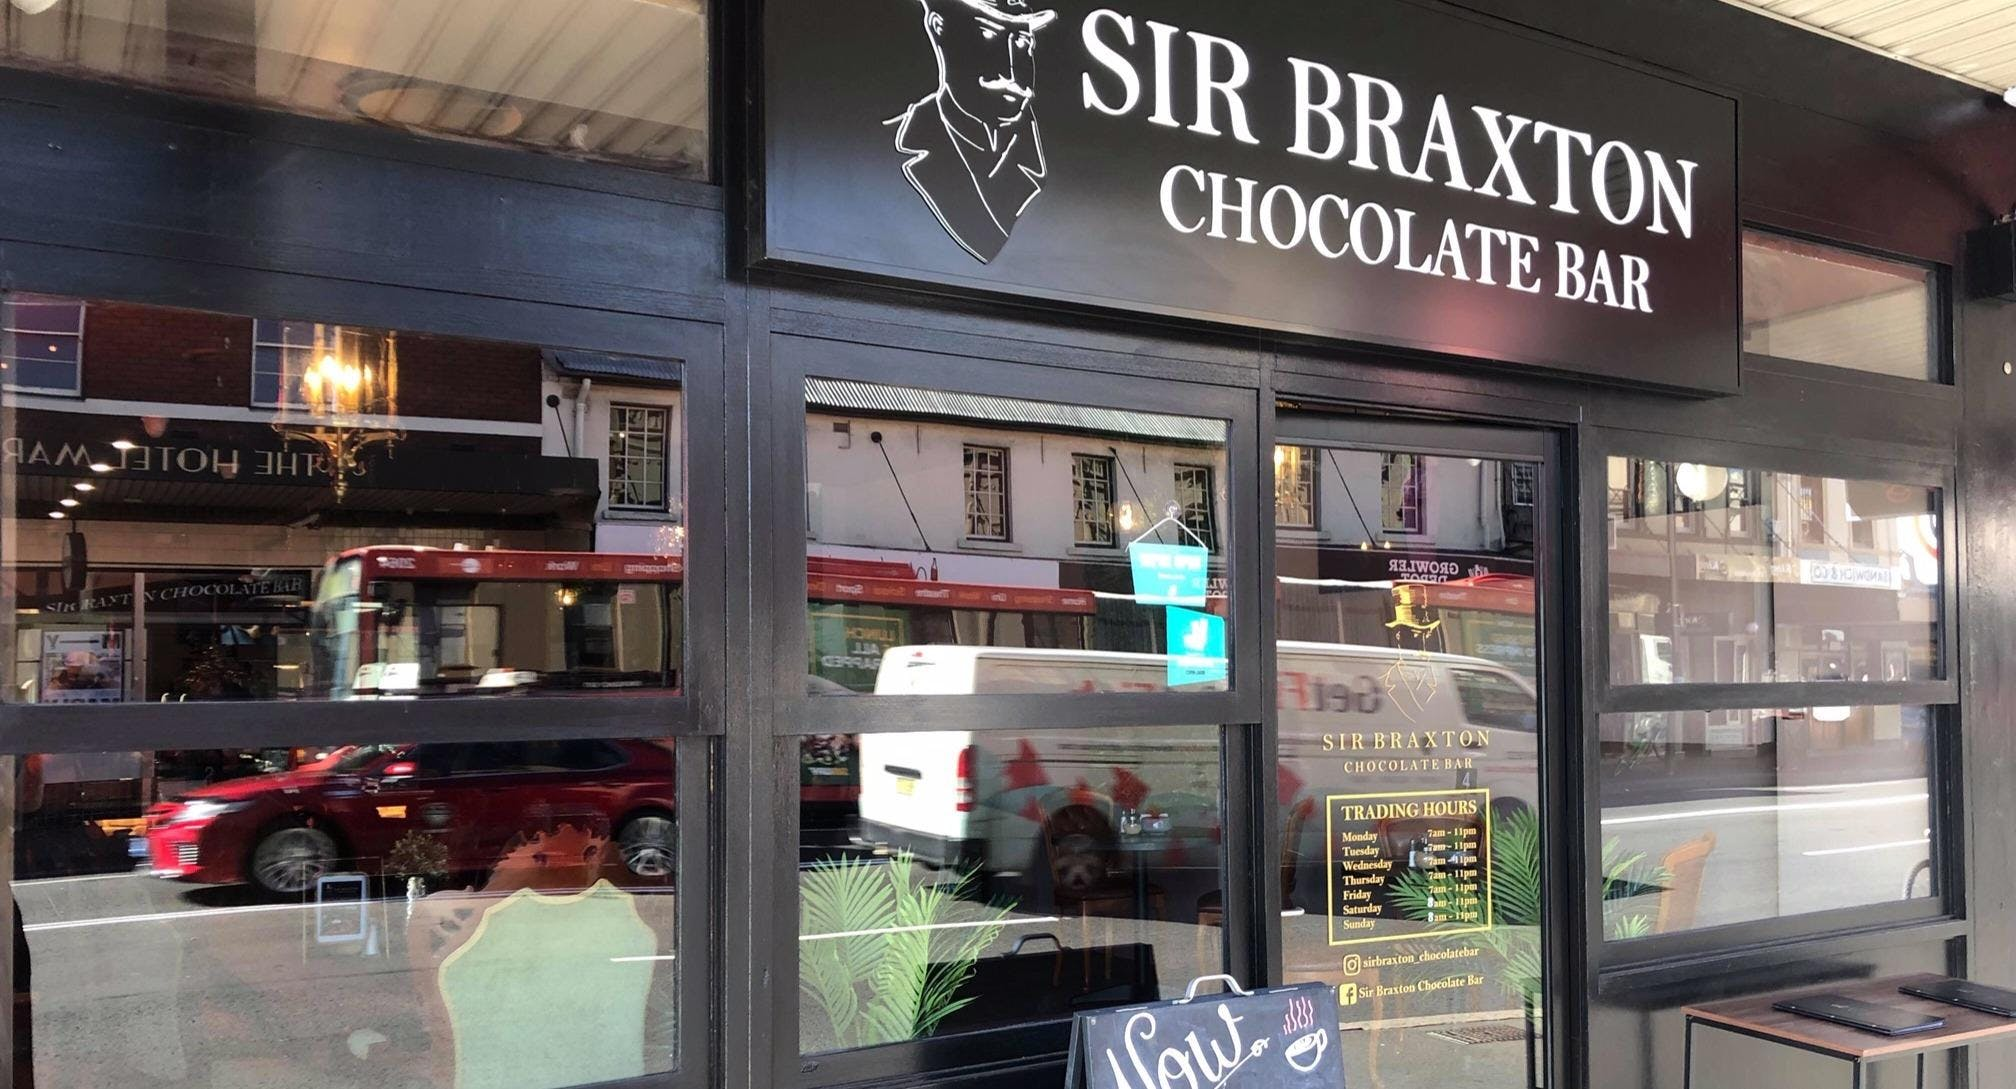 Sir Braxton Chocolate Bar Newtown Sydney image 2